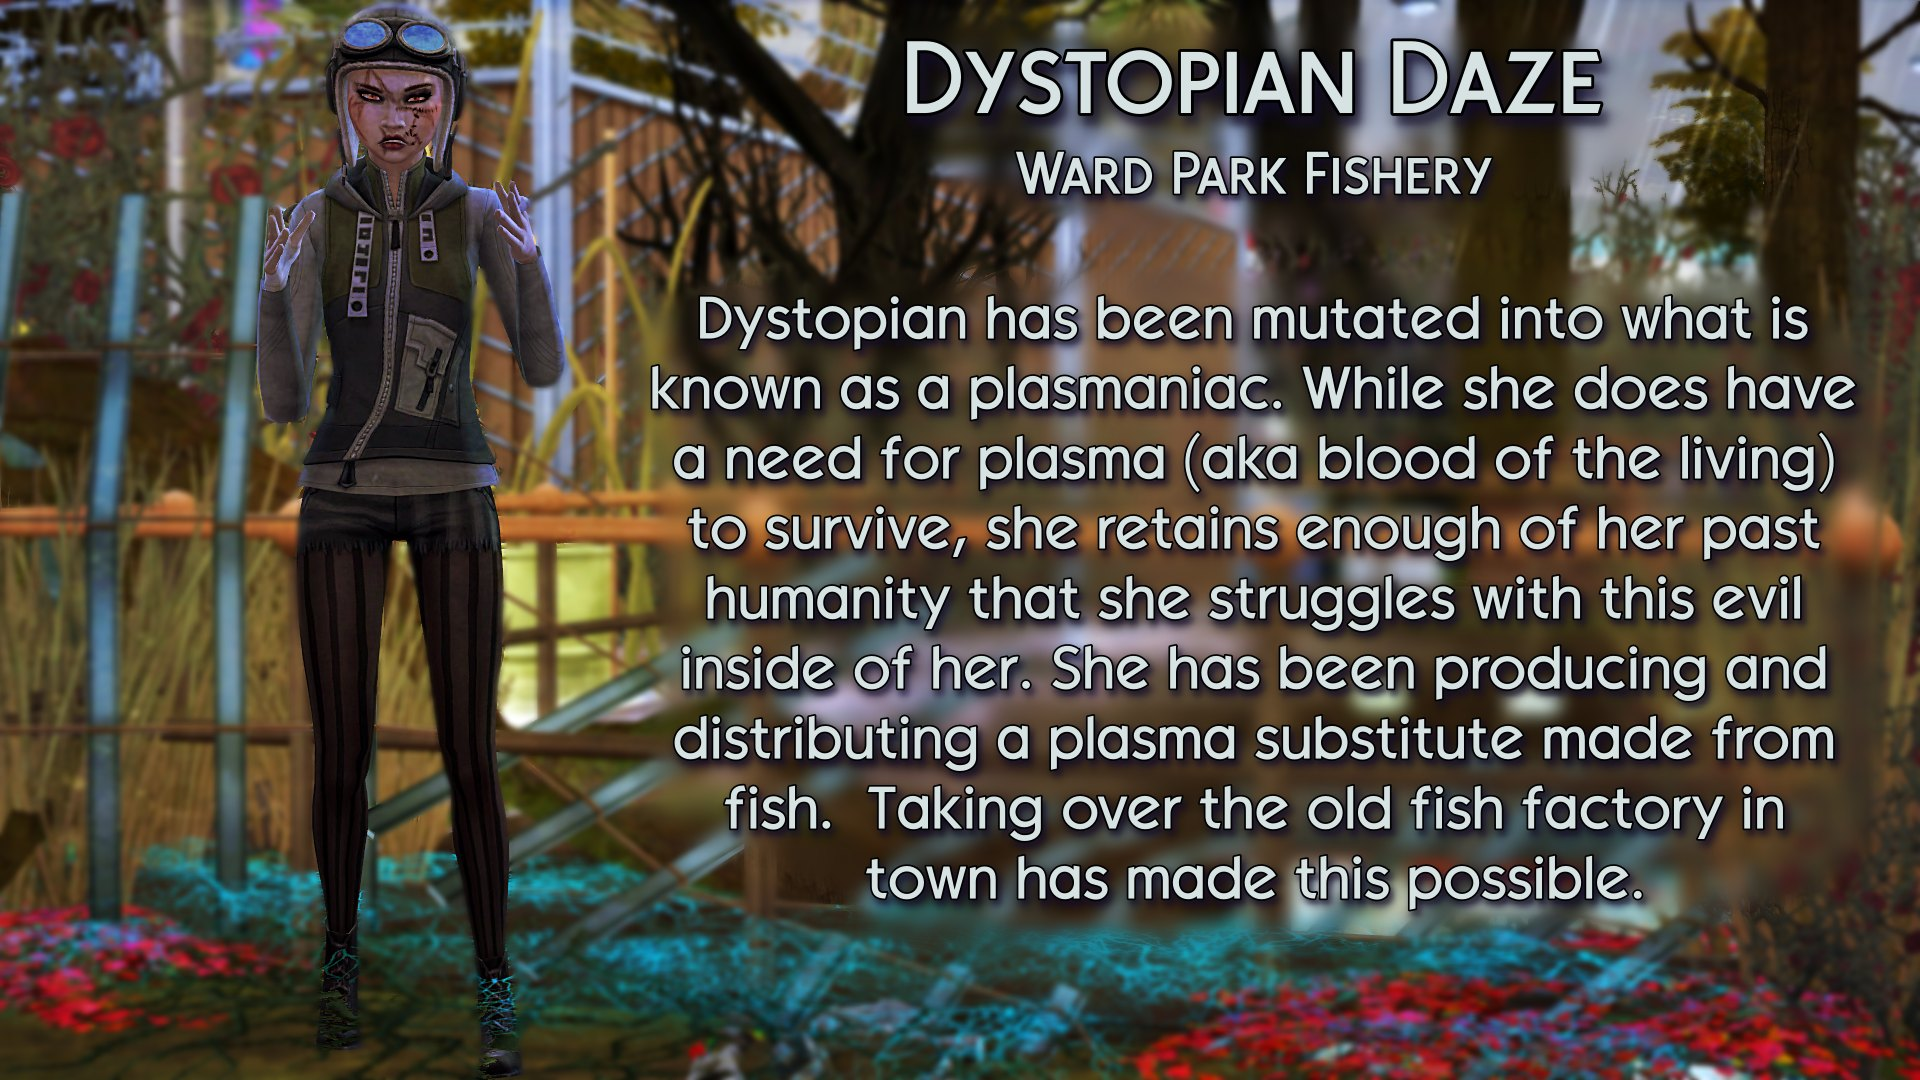 4 Dystopian Daze at the Fishery